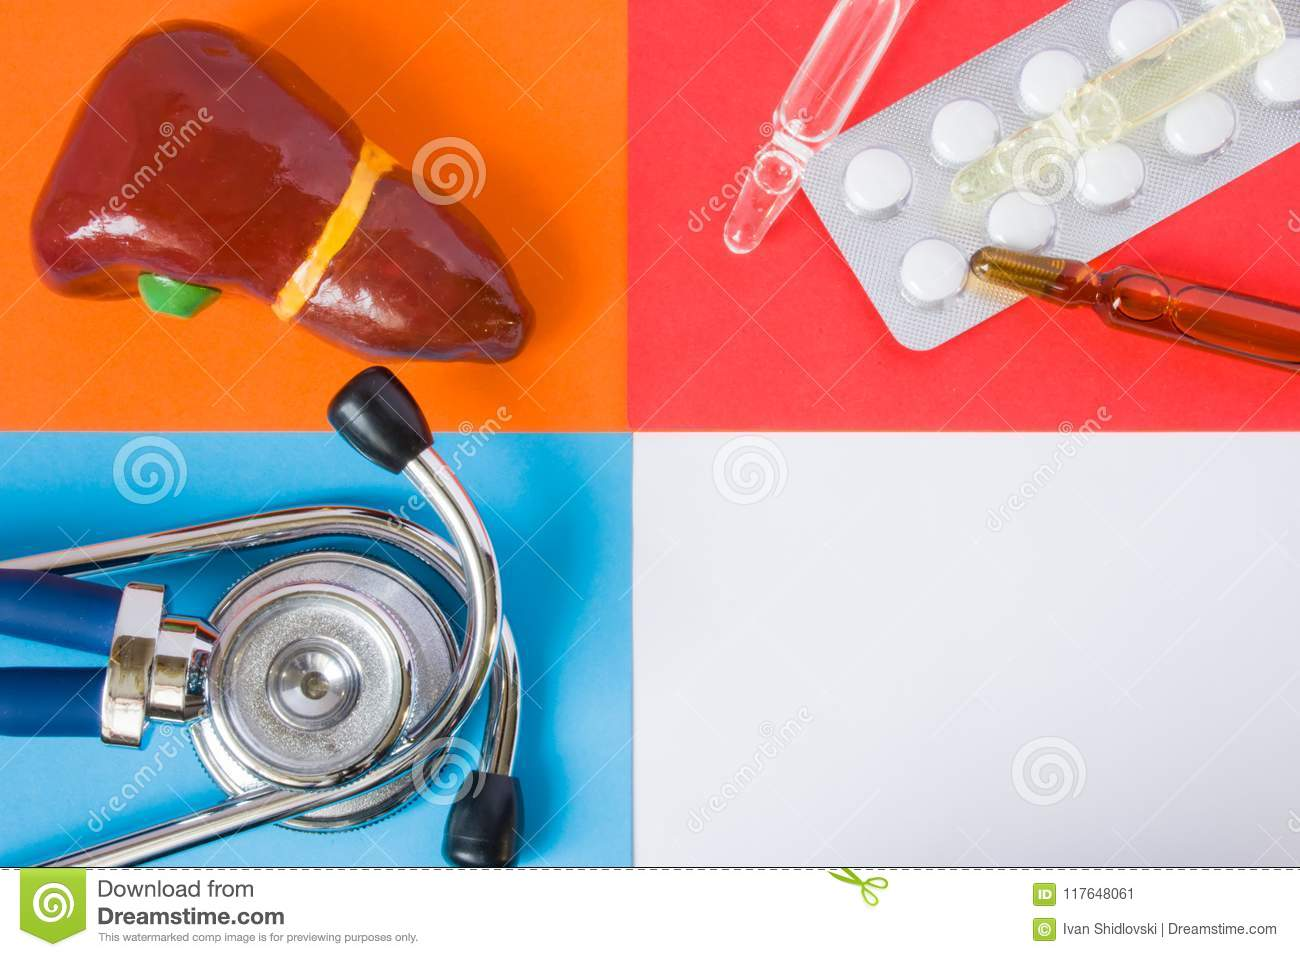 Medical or health care design concept photo-organ liver, diagnostic medical tool stethoscope and medications pills and vials